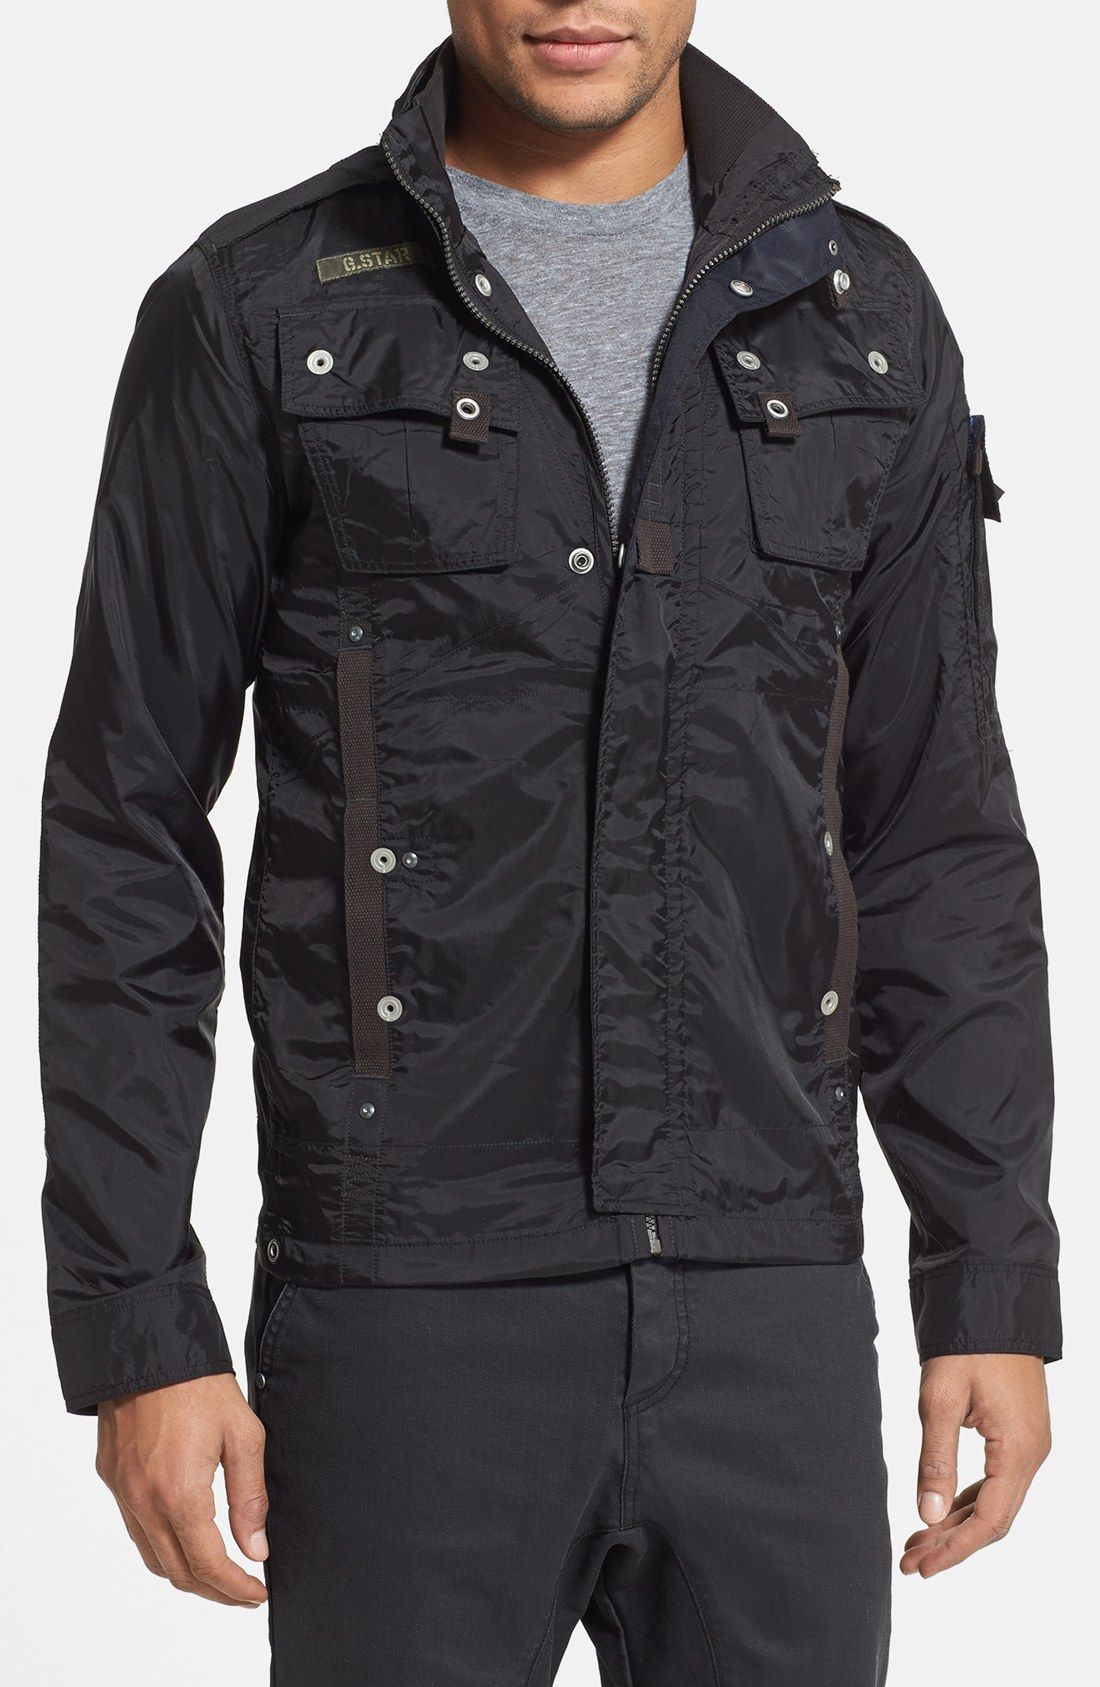 lyst g star raw recolite light weight military jacket in. Black Bedroom Furniture Sets. Home Design Ideas